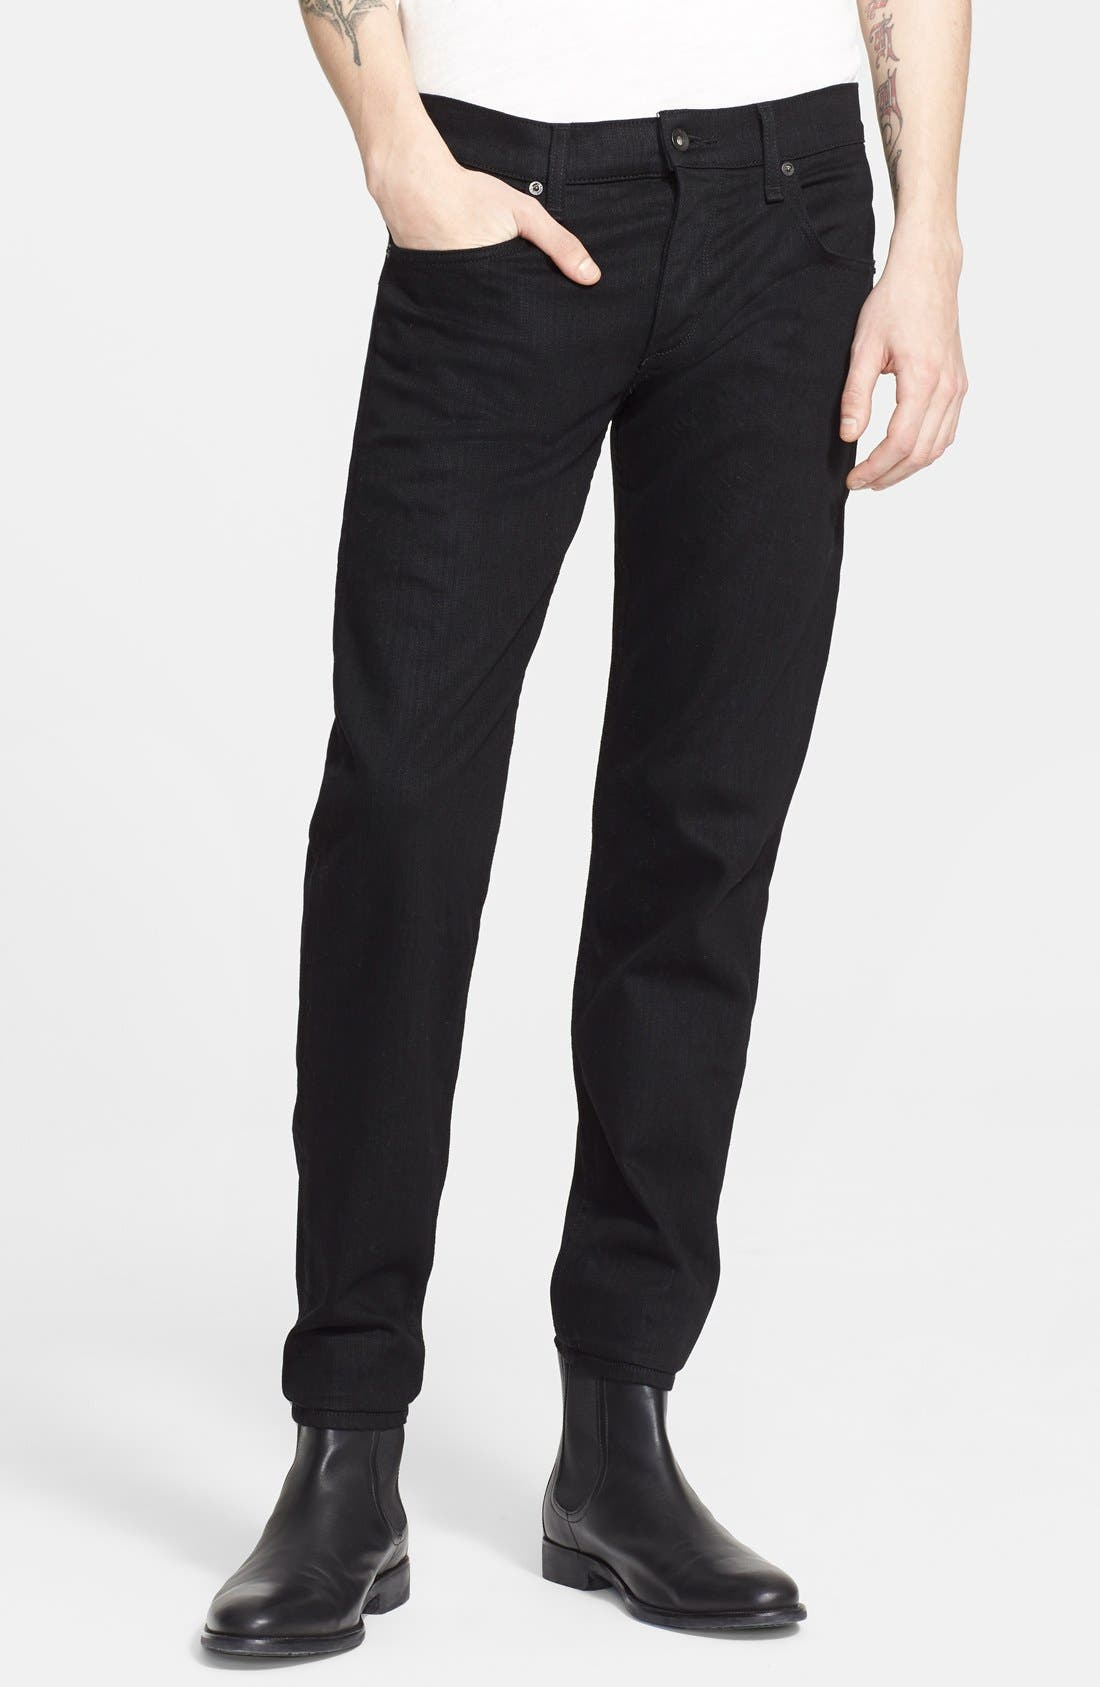 Standard Issue Fit 1 Skinny Fit Jeans,                             Main thumbnail 1, color,                             BLACK